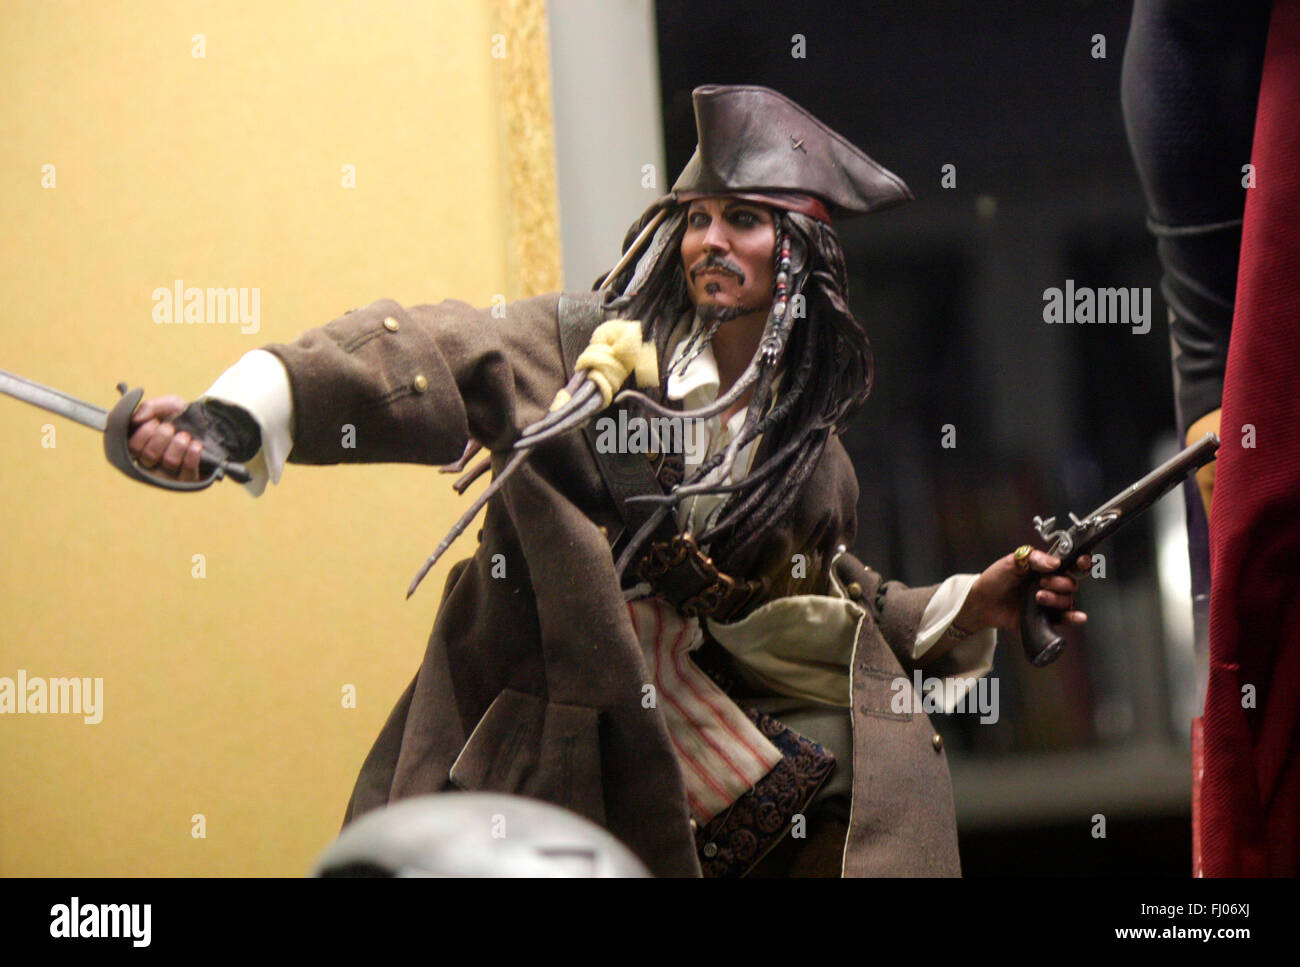 "Figur des Piratenkapitaens ""Jack Sparrows"" (gespielt von Johnny Depp"" aus ""Fluch der Karibik"" (Pirates of the Caribbean), Stock Photo"